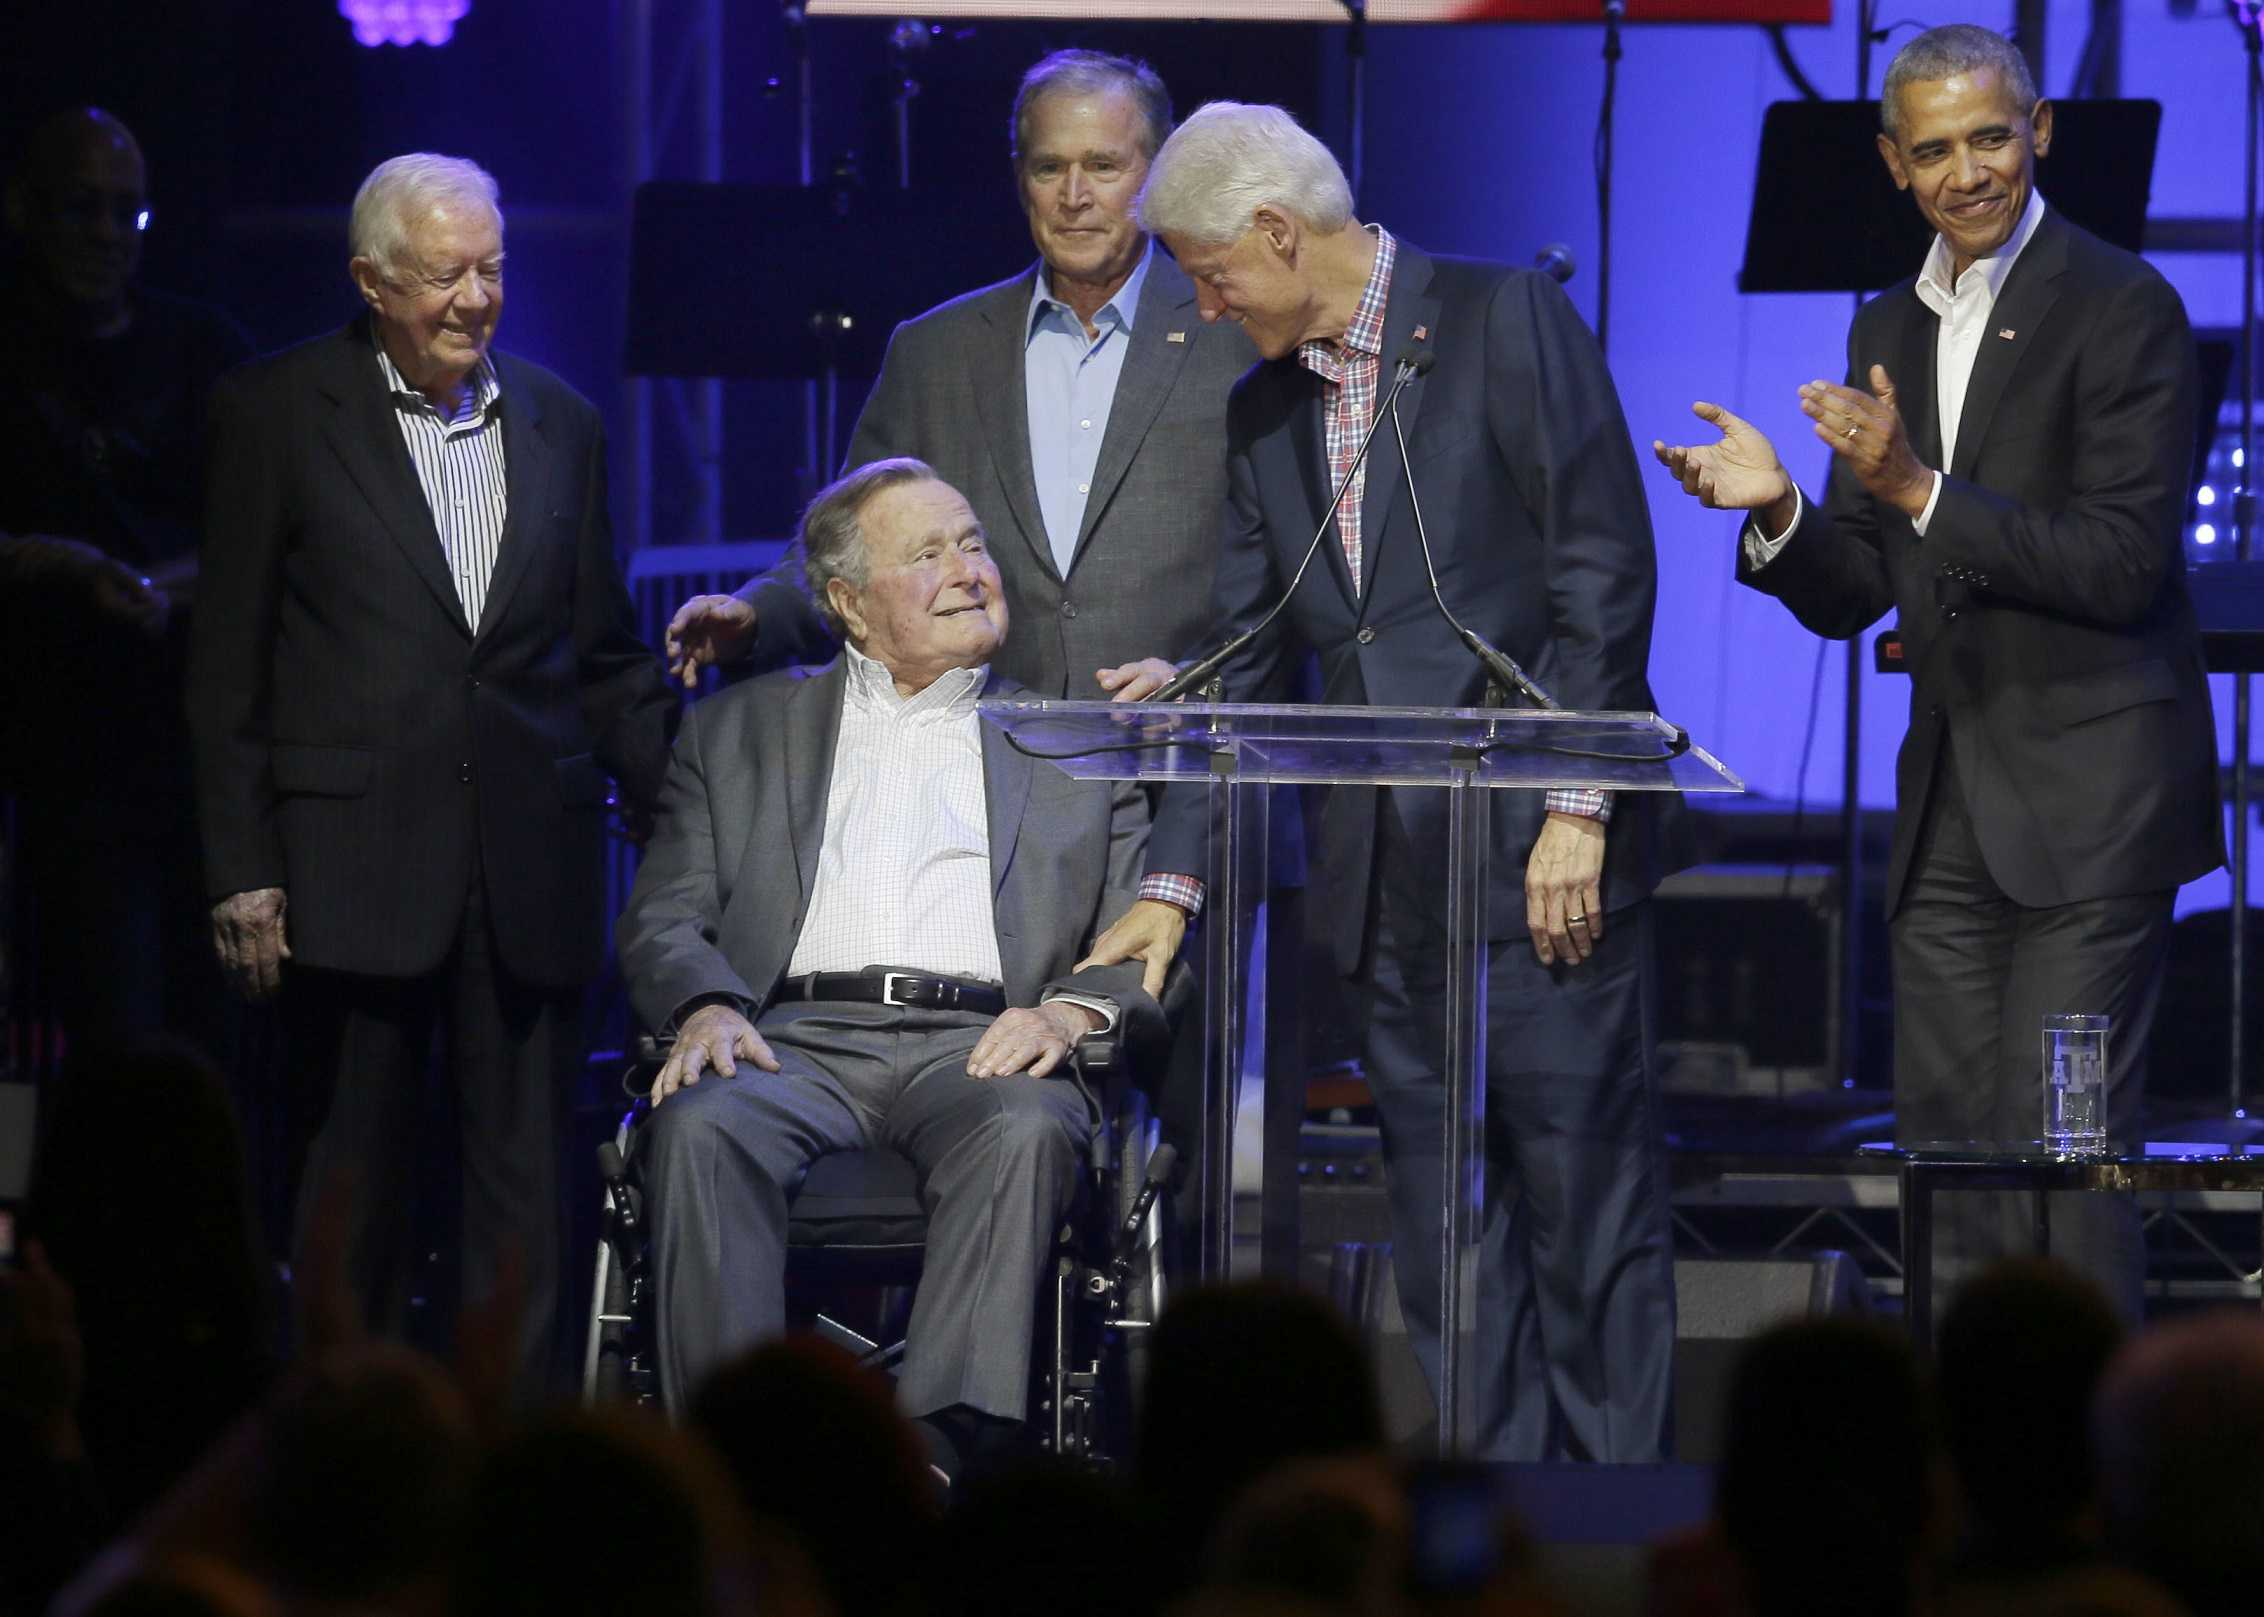 Former presidents call for unity at hurricane relief concert